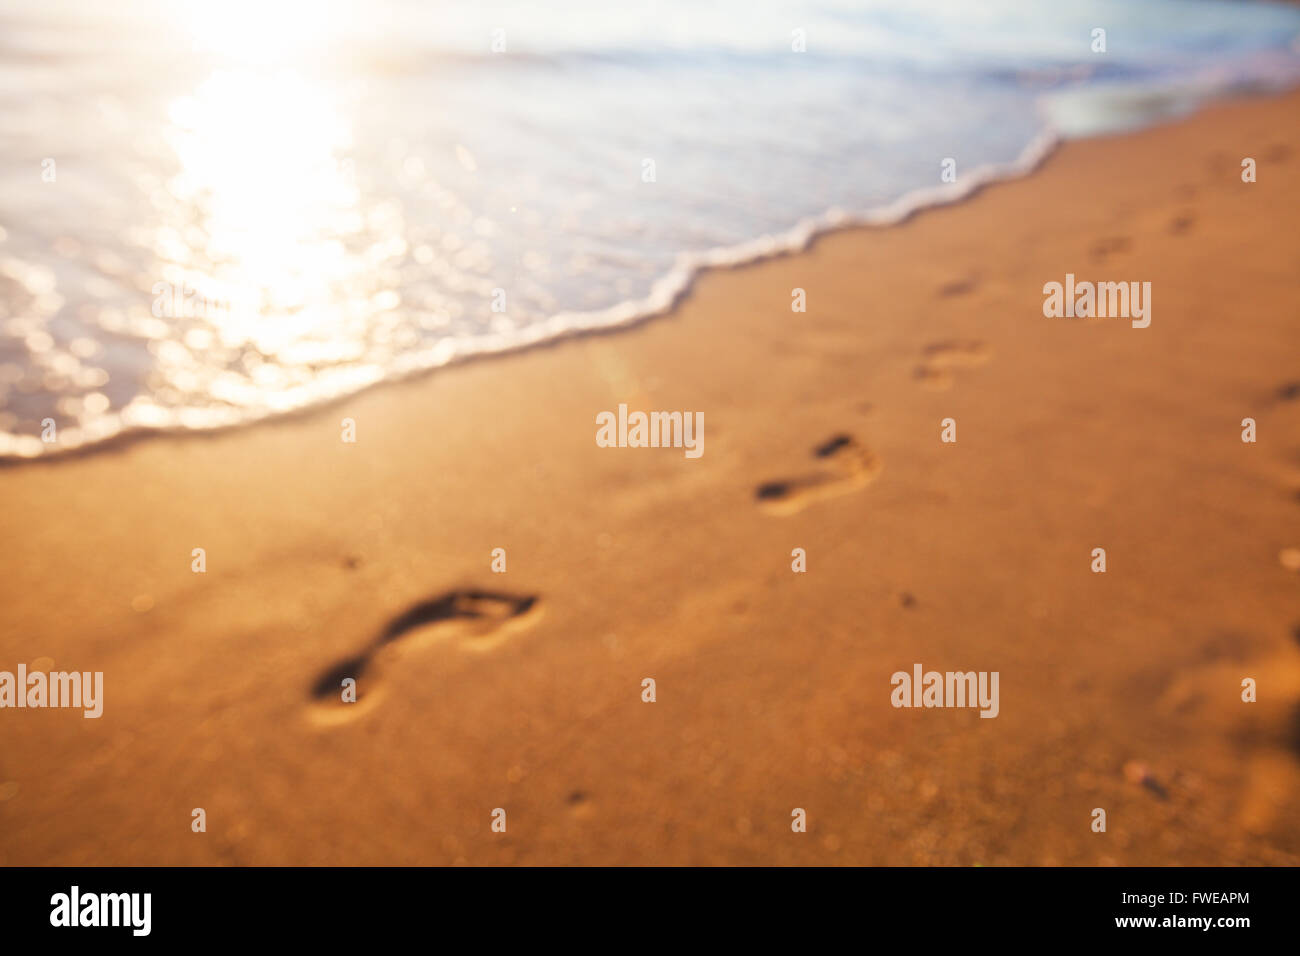 Blurred background of footprints at sunset time - Stock Image